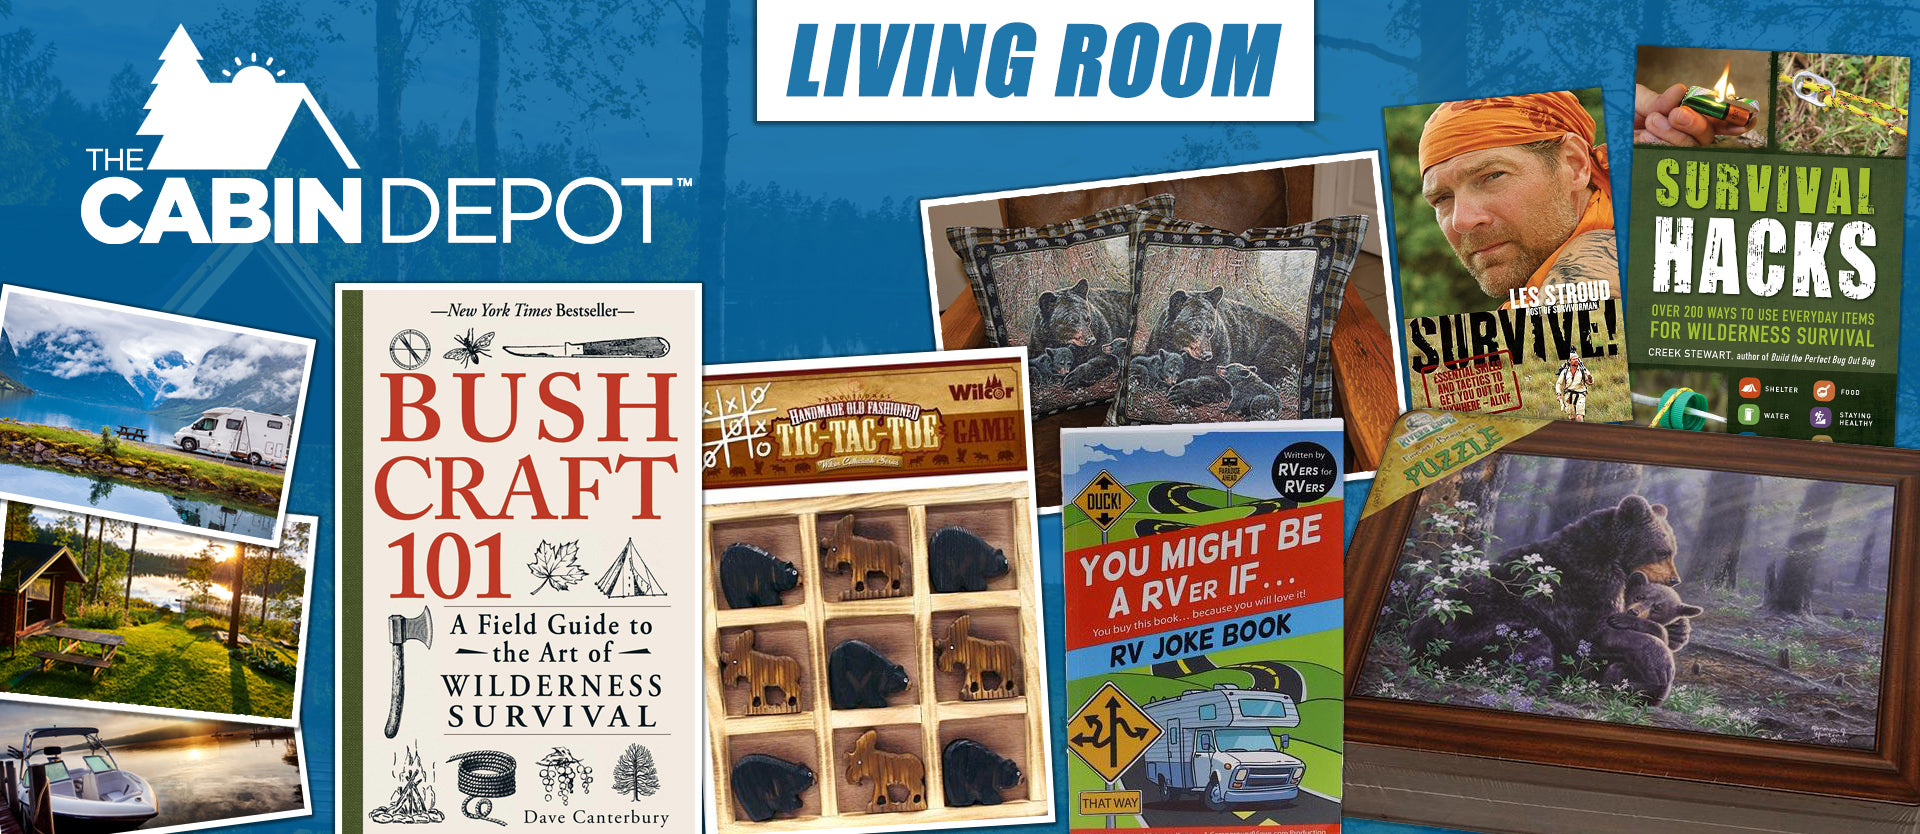 Living Room Decor Off Grid Cabin The Cabin Depot ™ Canada